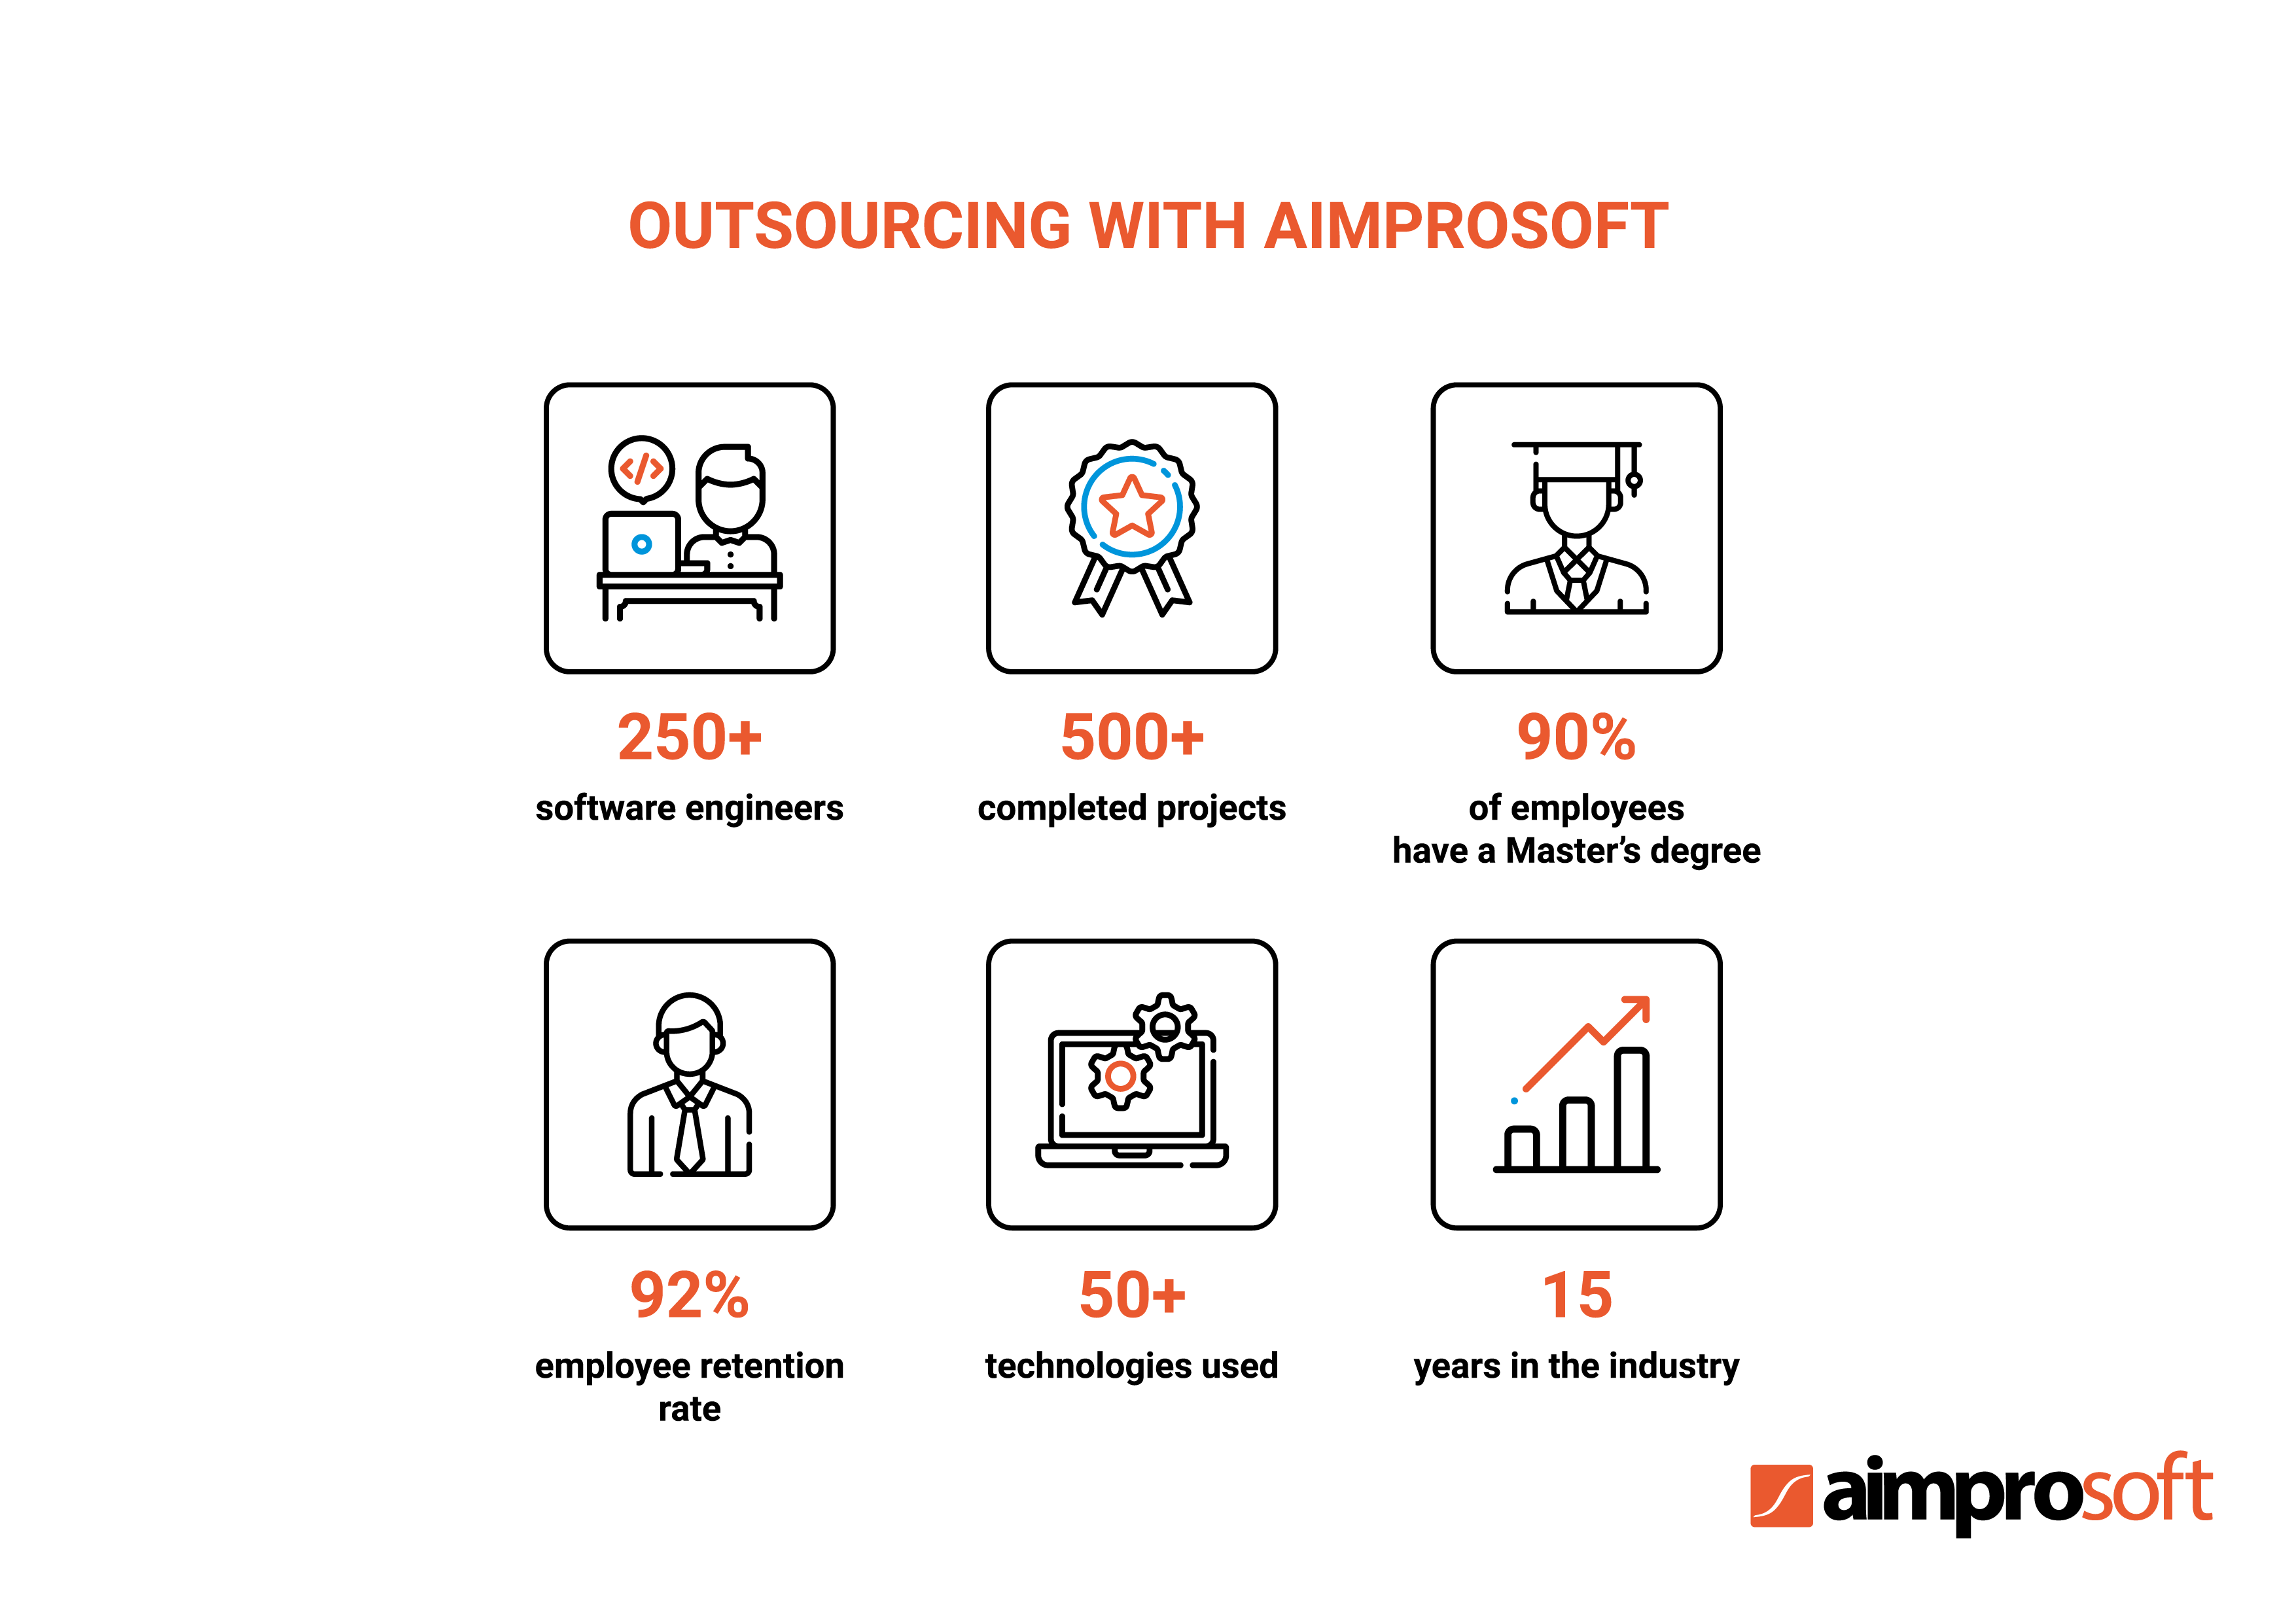 IT outsourcing with Aimprosoft